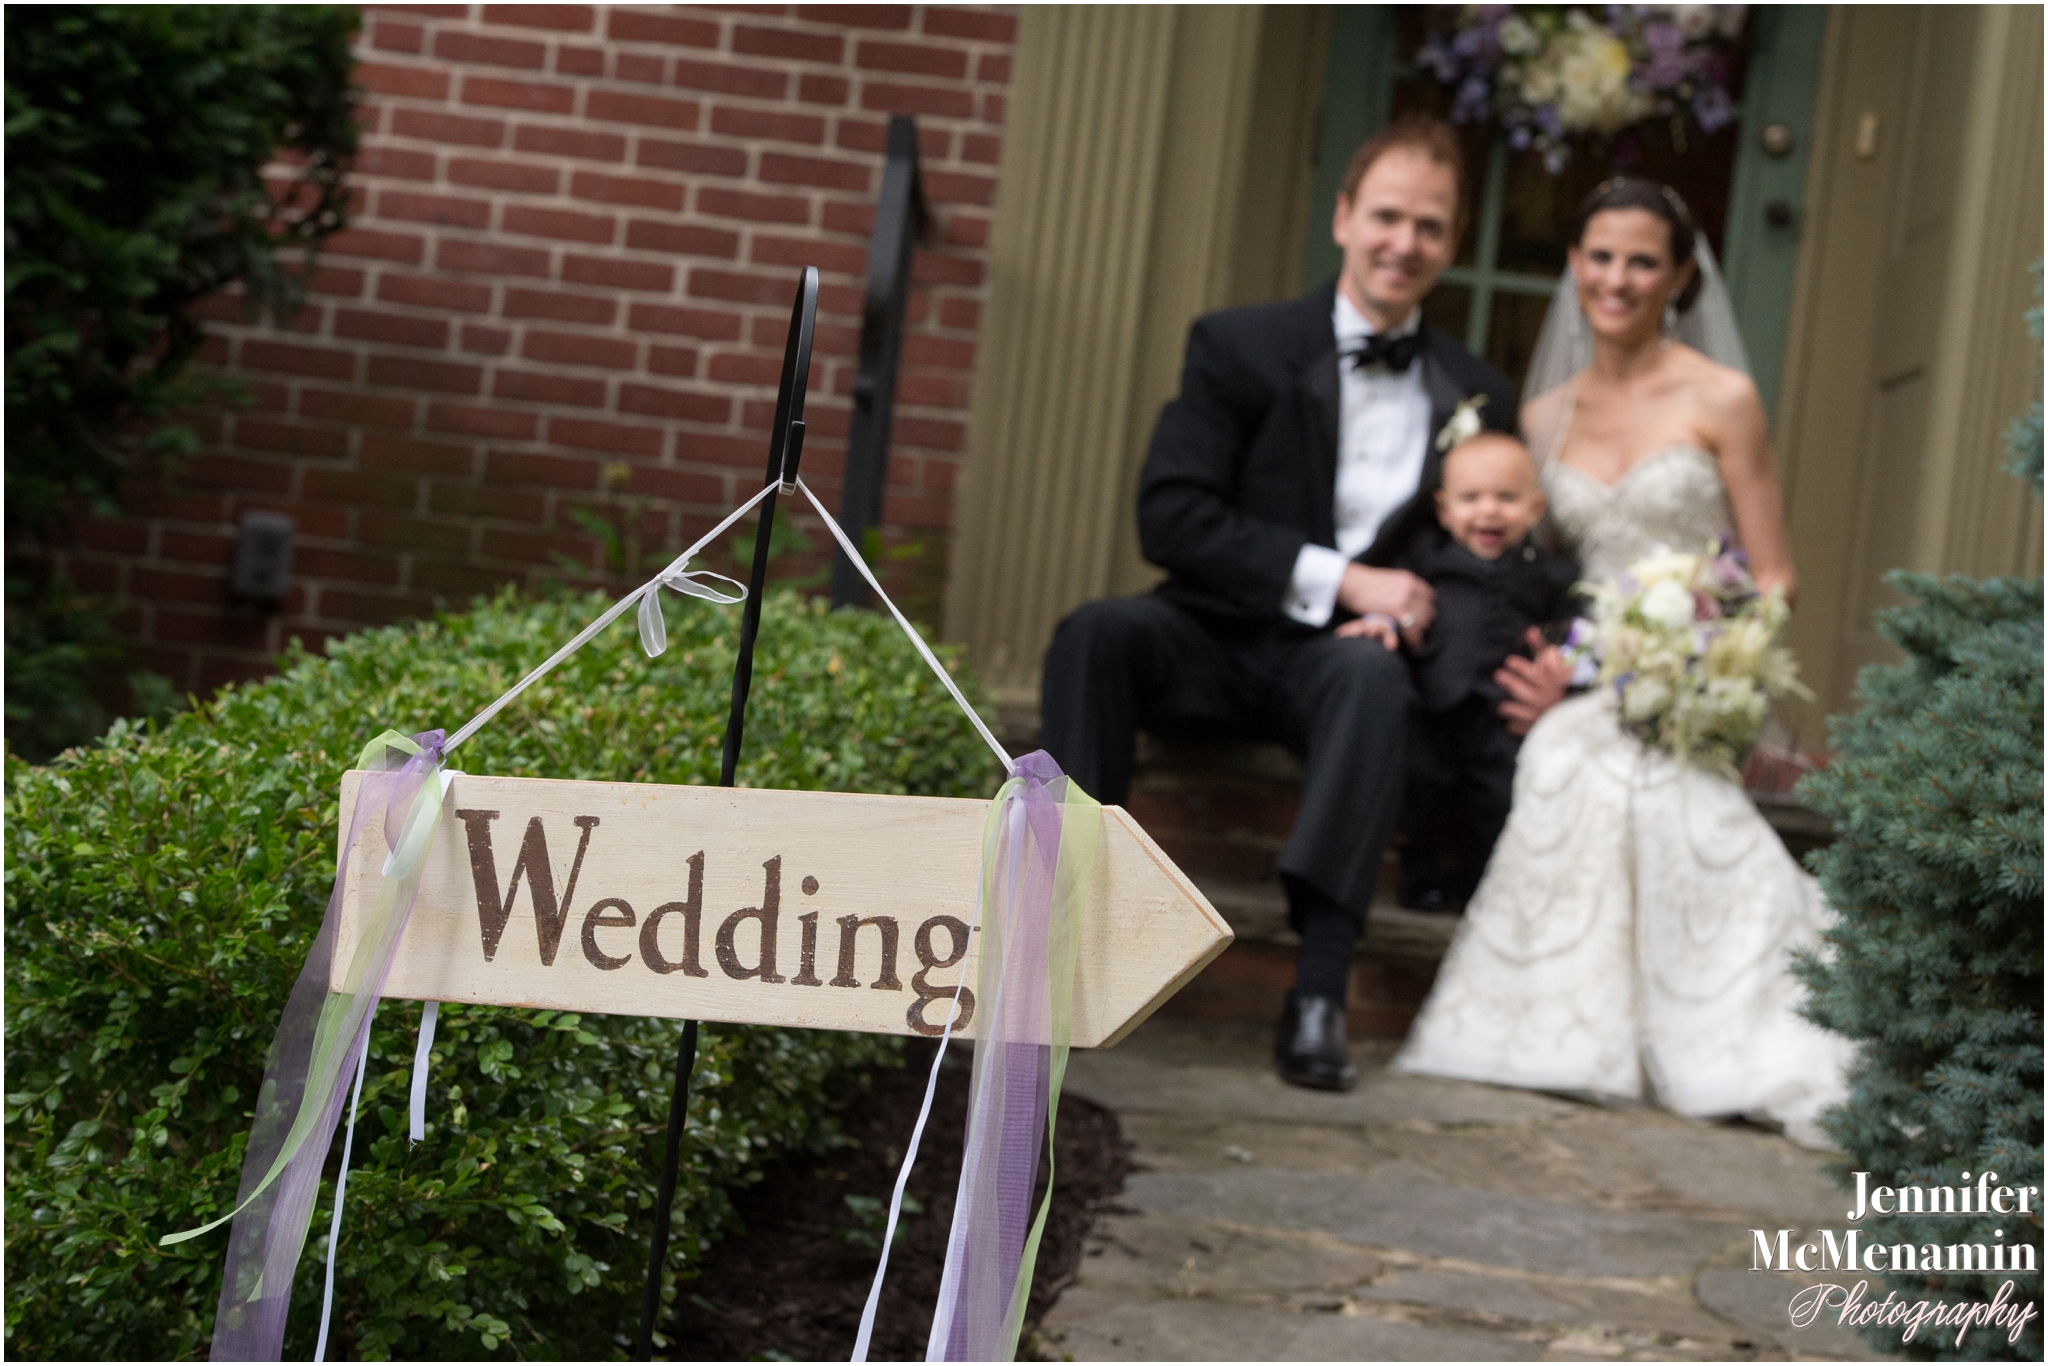 019-CoughlinPomper_00749-0158_JenniferMcMenaminPhotography_Private-Residence-Roland-Park_Baltimore-Wedding-Photography